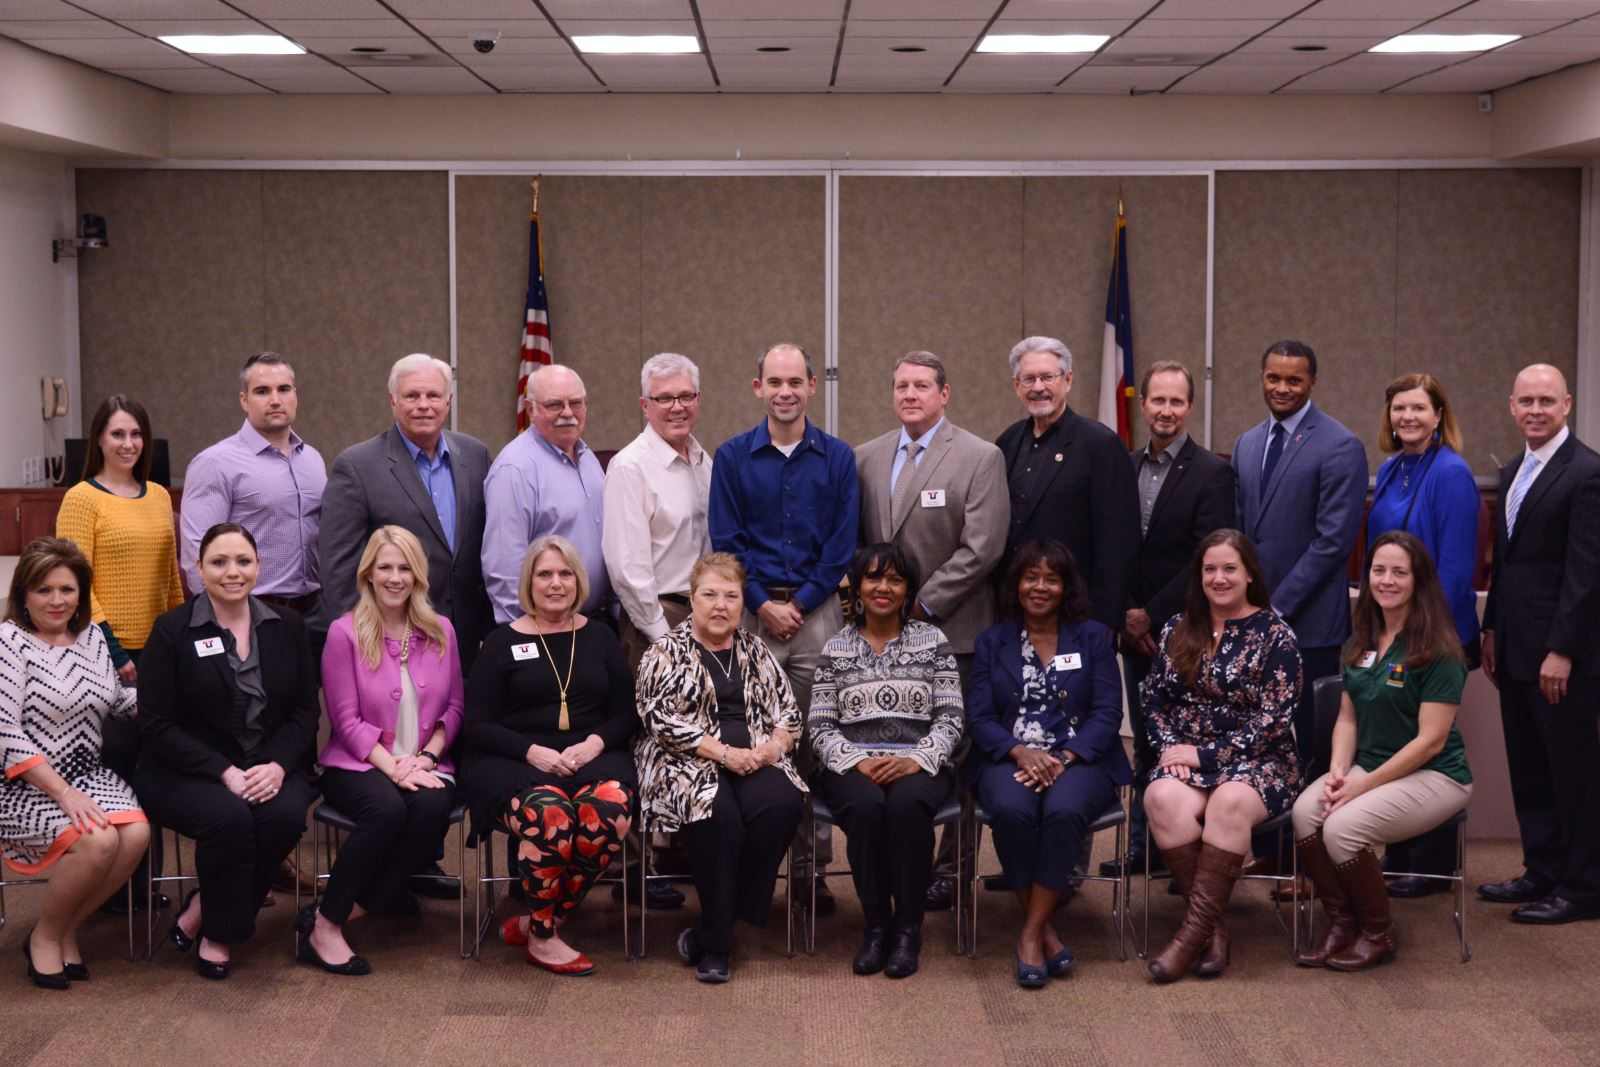 Education Foundation's Board of Directors